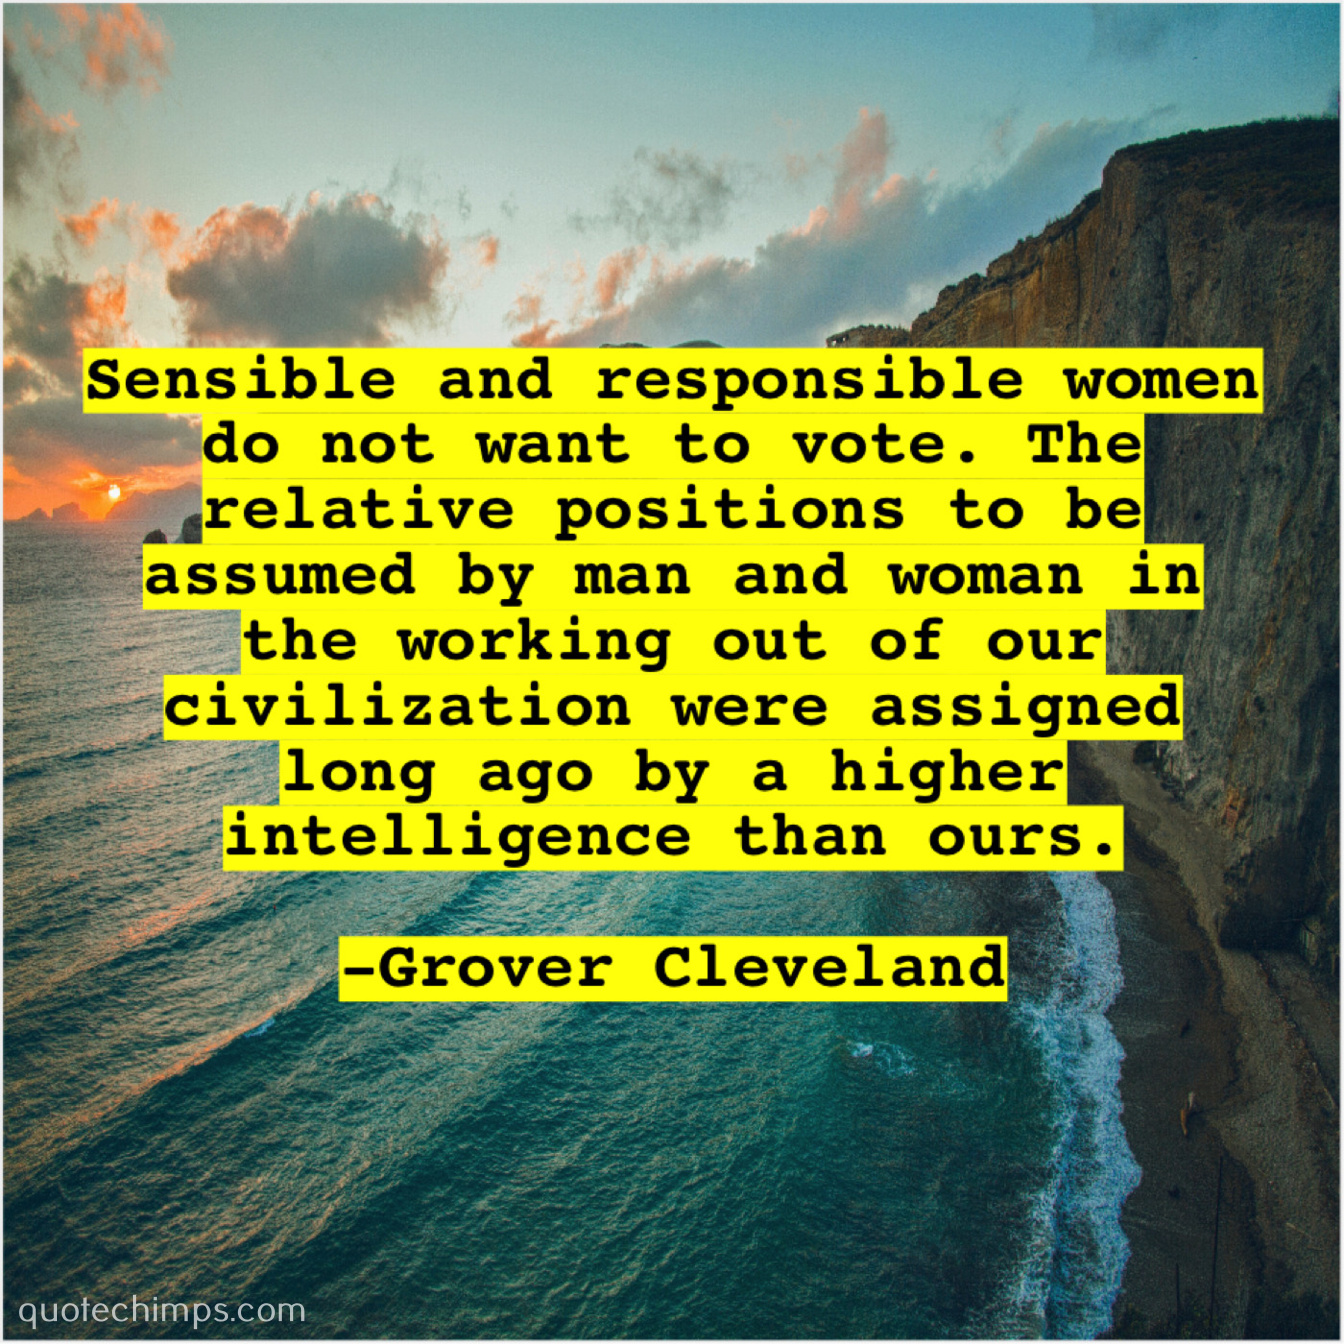 Grover Cleveland Sensible And Responsible Women Do